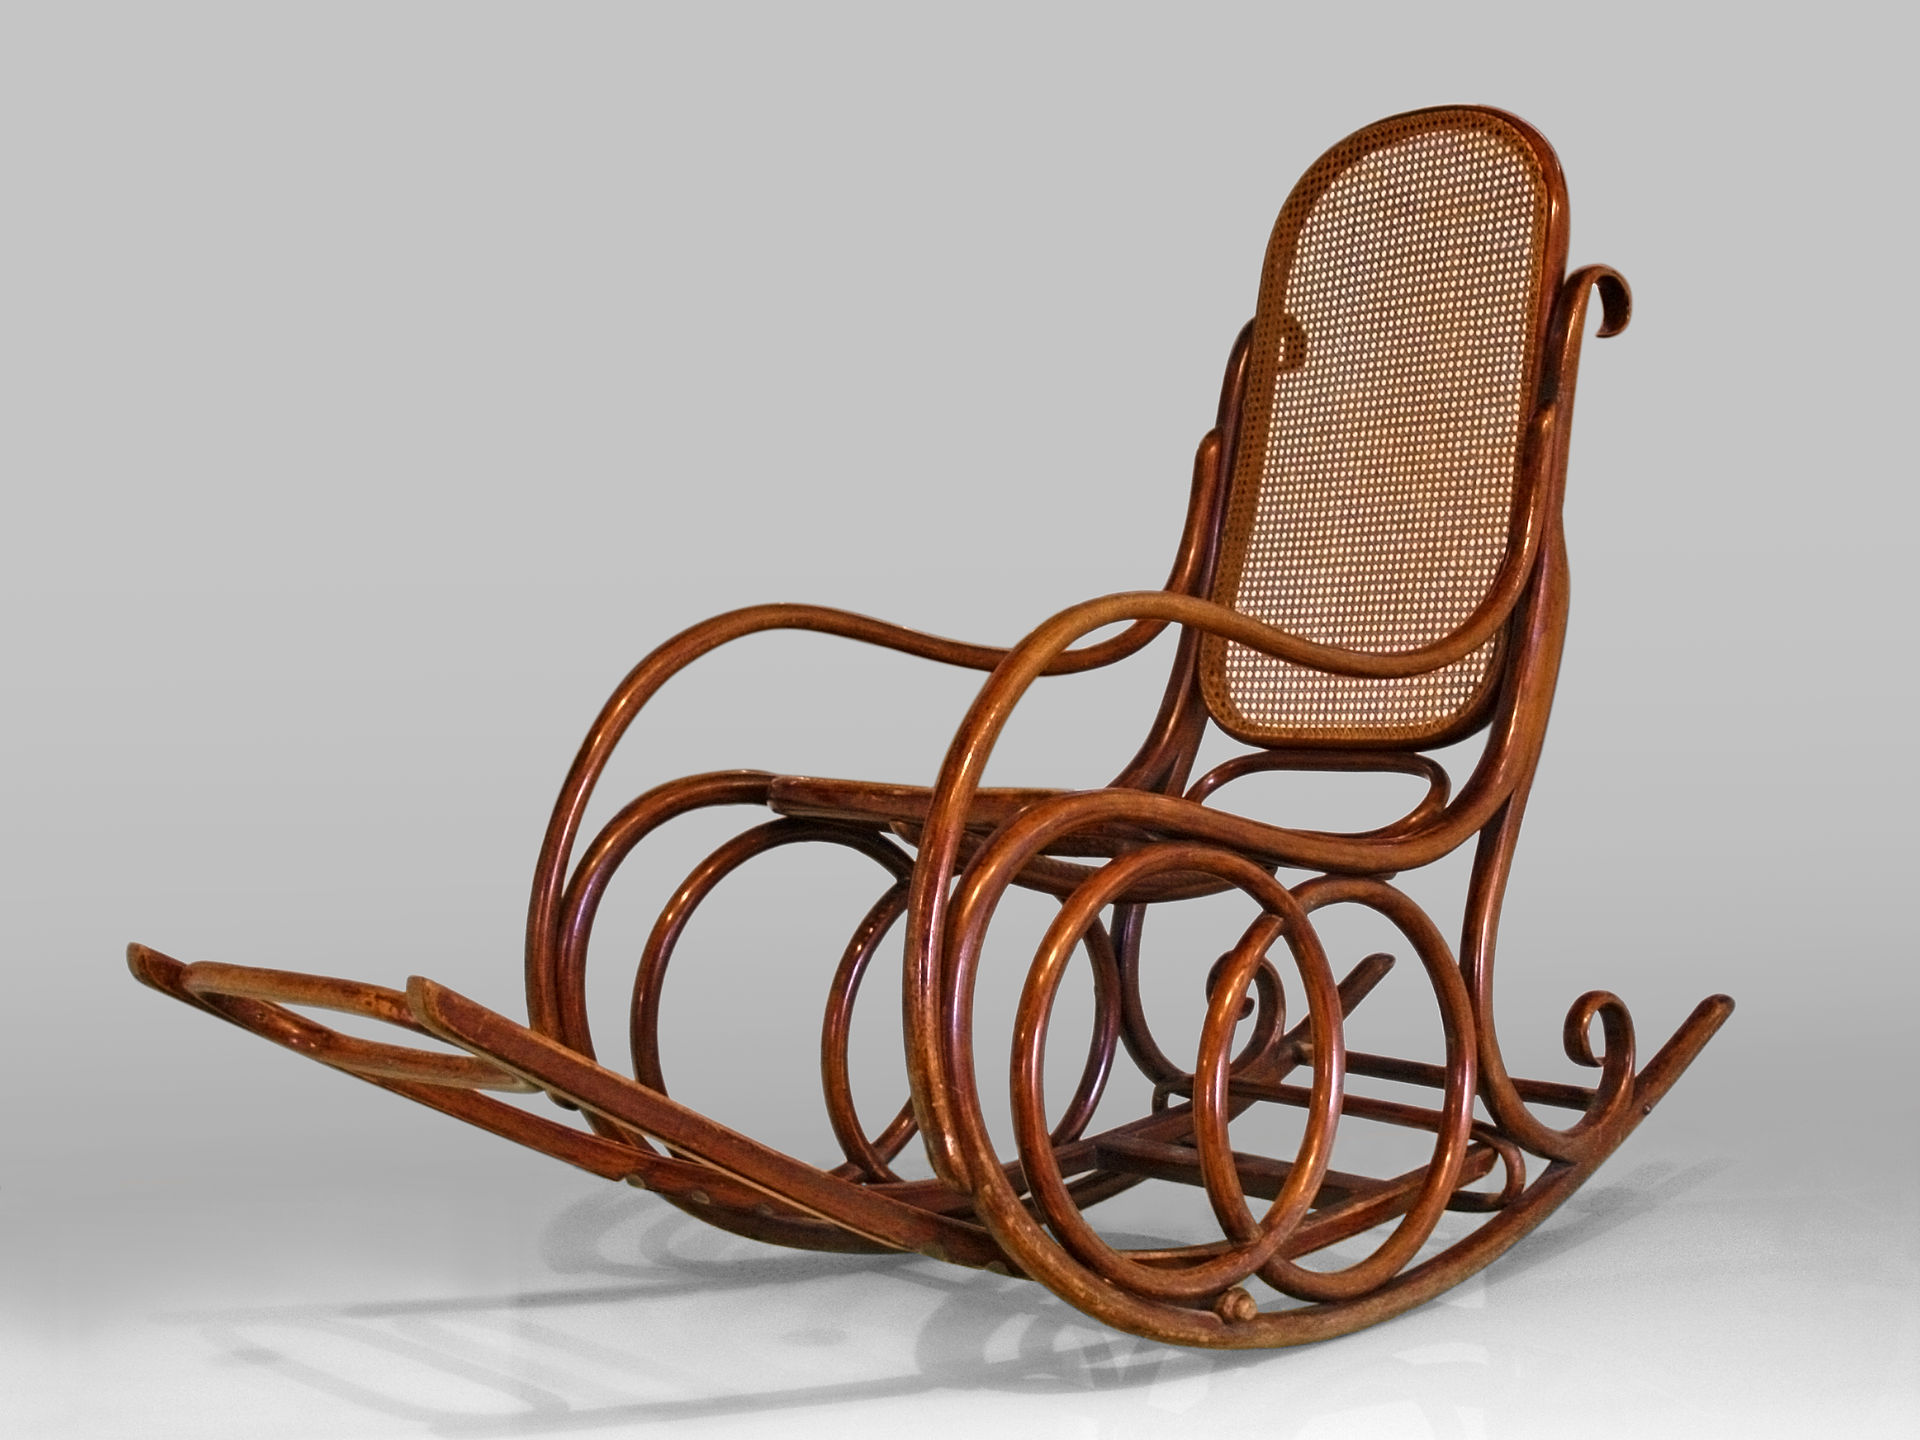 Rocking chair wikipedia for Chair etymology